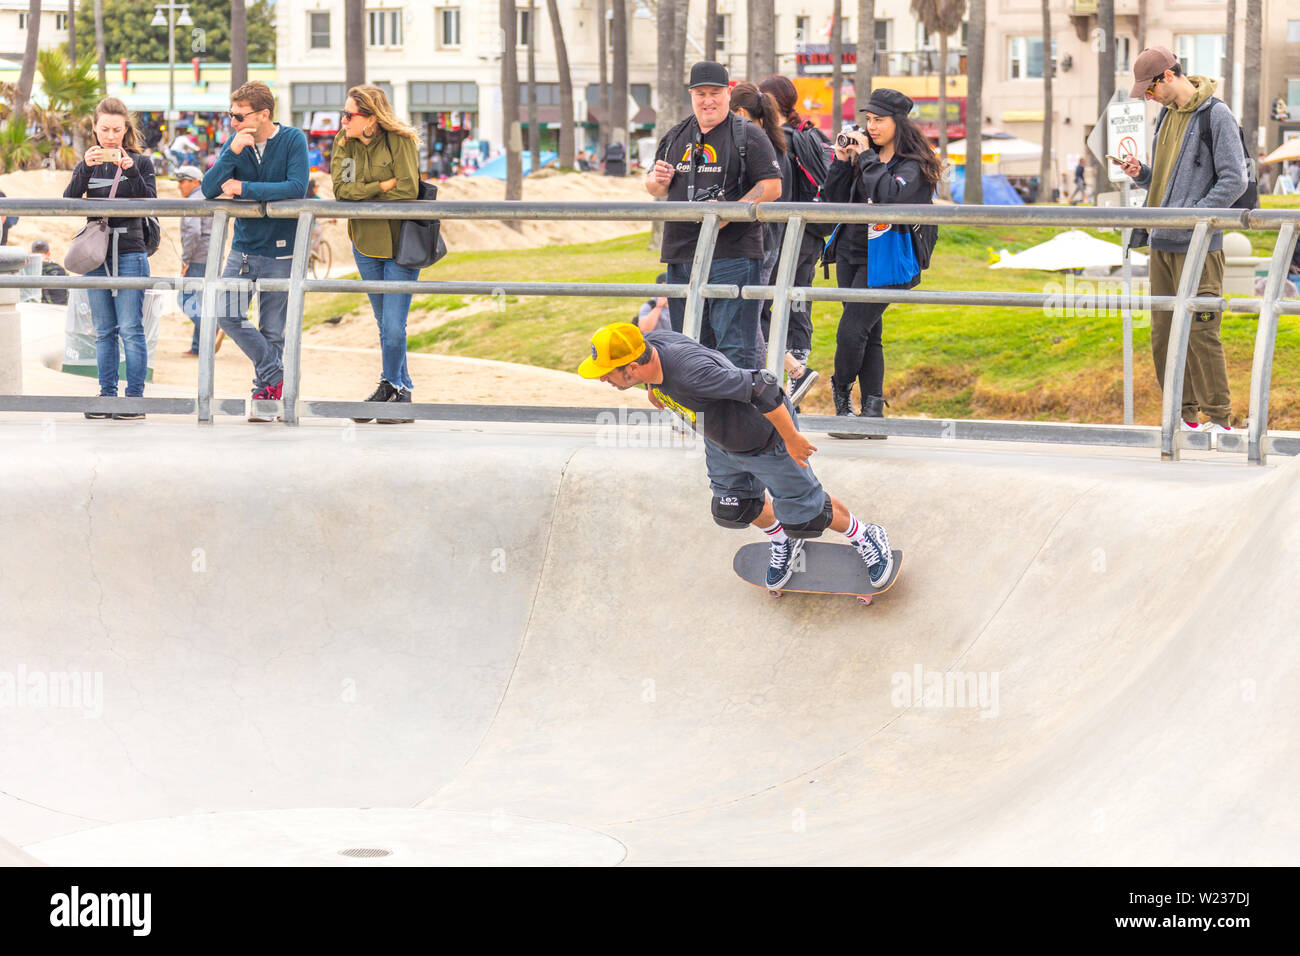 LOS ANGELES, CALIFORNIA, USA - May 11, 2019: Concrete ramps and palm trees at the popular Venice beach skateboard park in Los Angeles, California Stock Photo